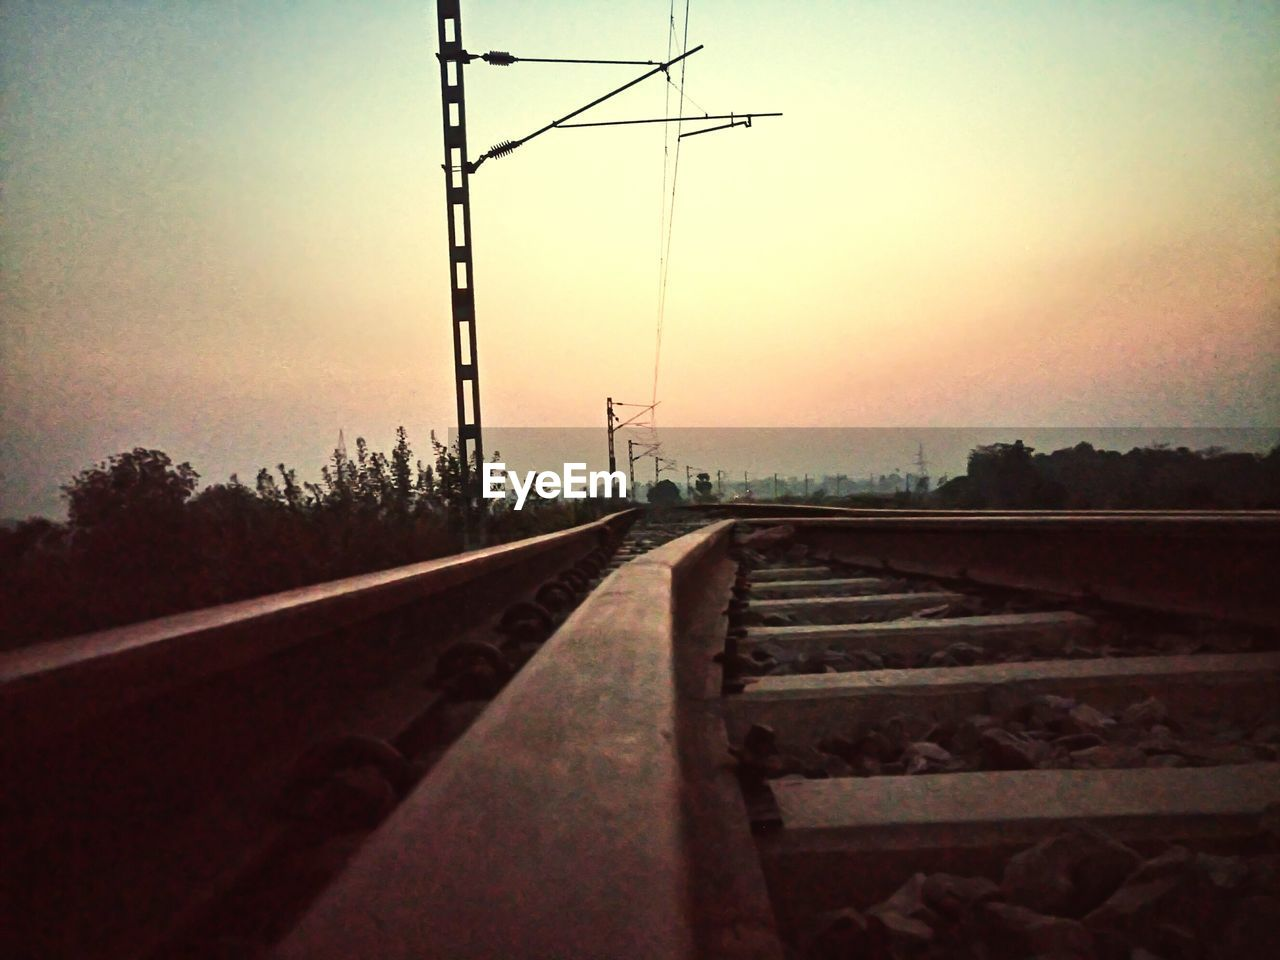 sky, transportation, rail transportation, track, sunset, railroad track, nature, direction, no people, the way forward, diminishing perspective, connection, mode of transportation, electricity pylon, electricity, vanishing point, metal, outdoors, technology, tree, straight, power supply, surface level